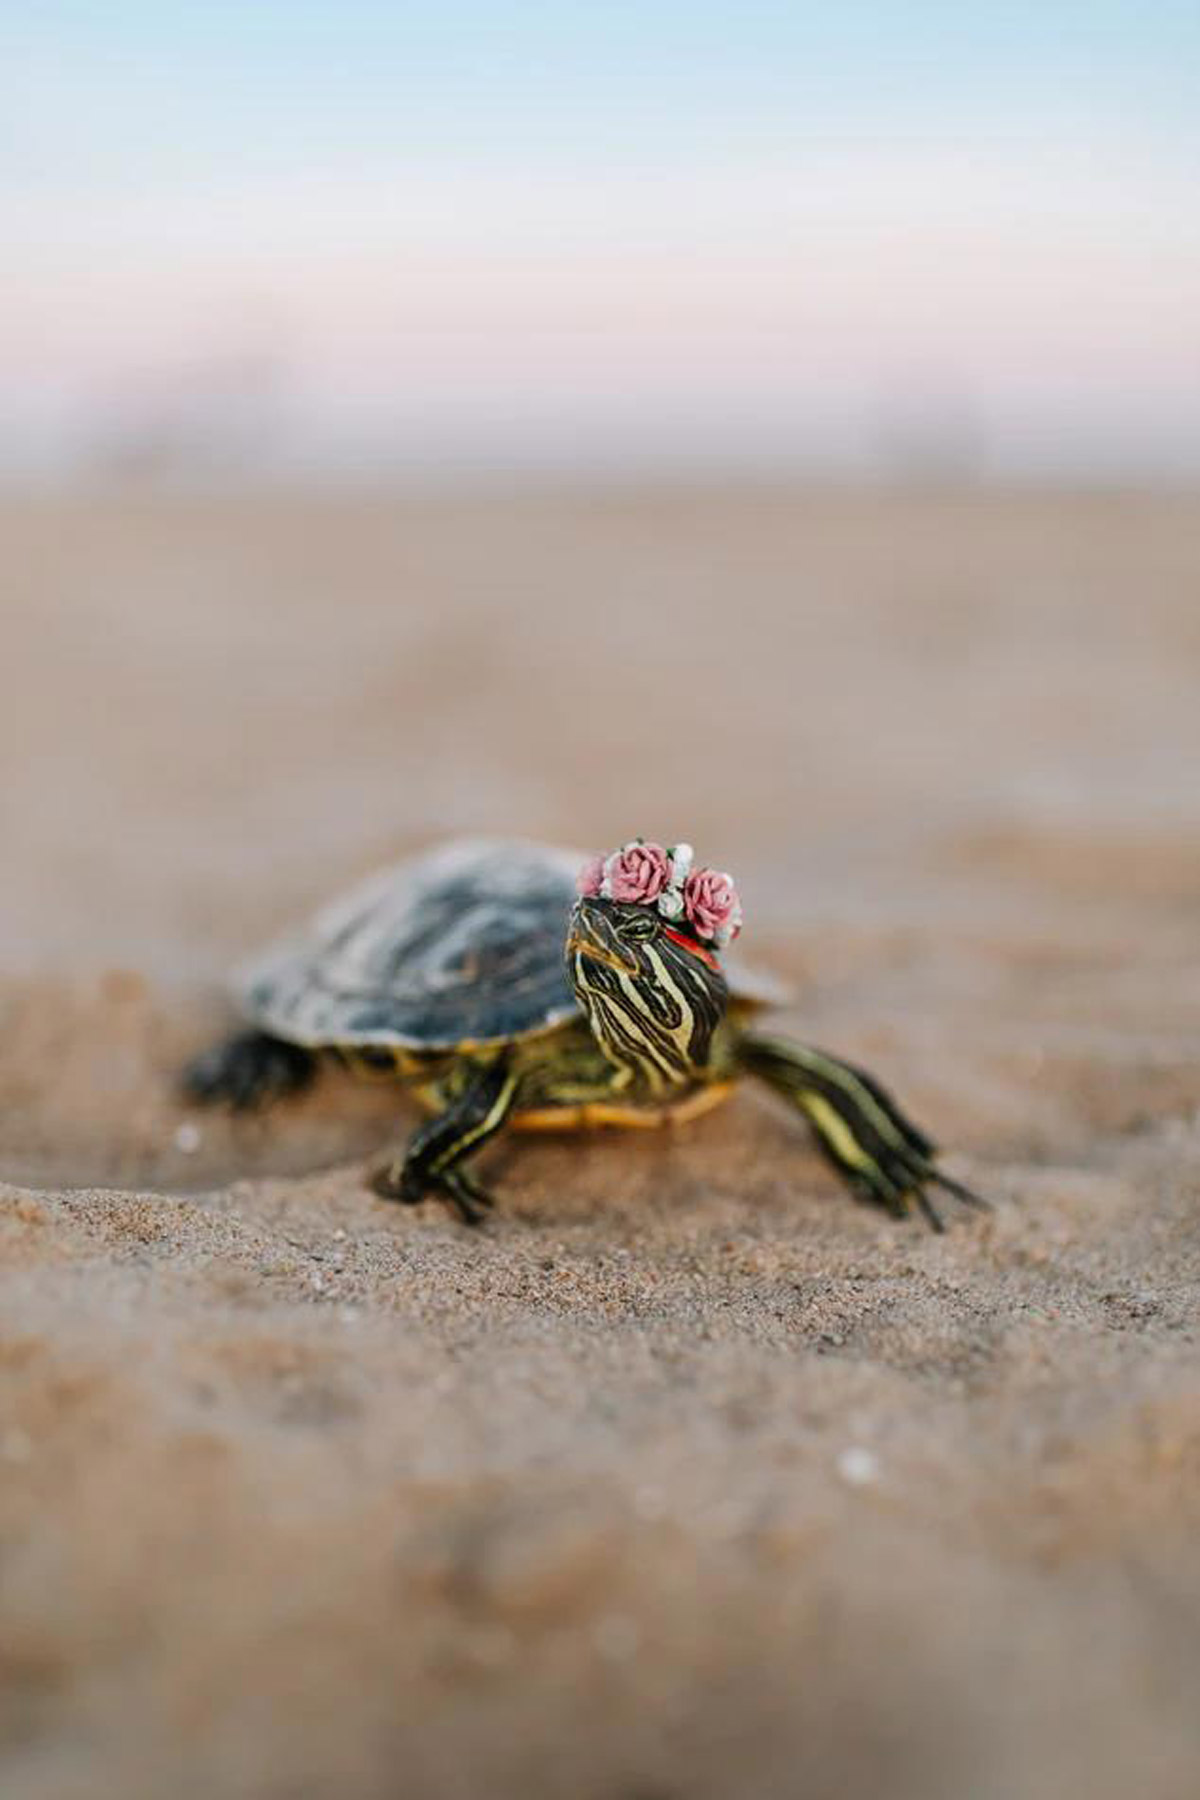 Planning to Get A Turtle? Here's What You Should Know!